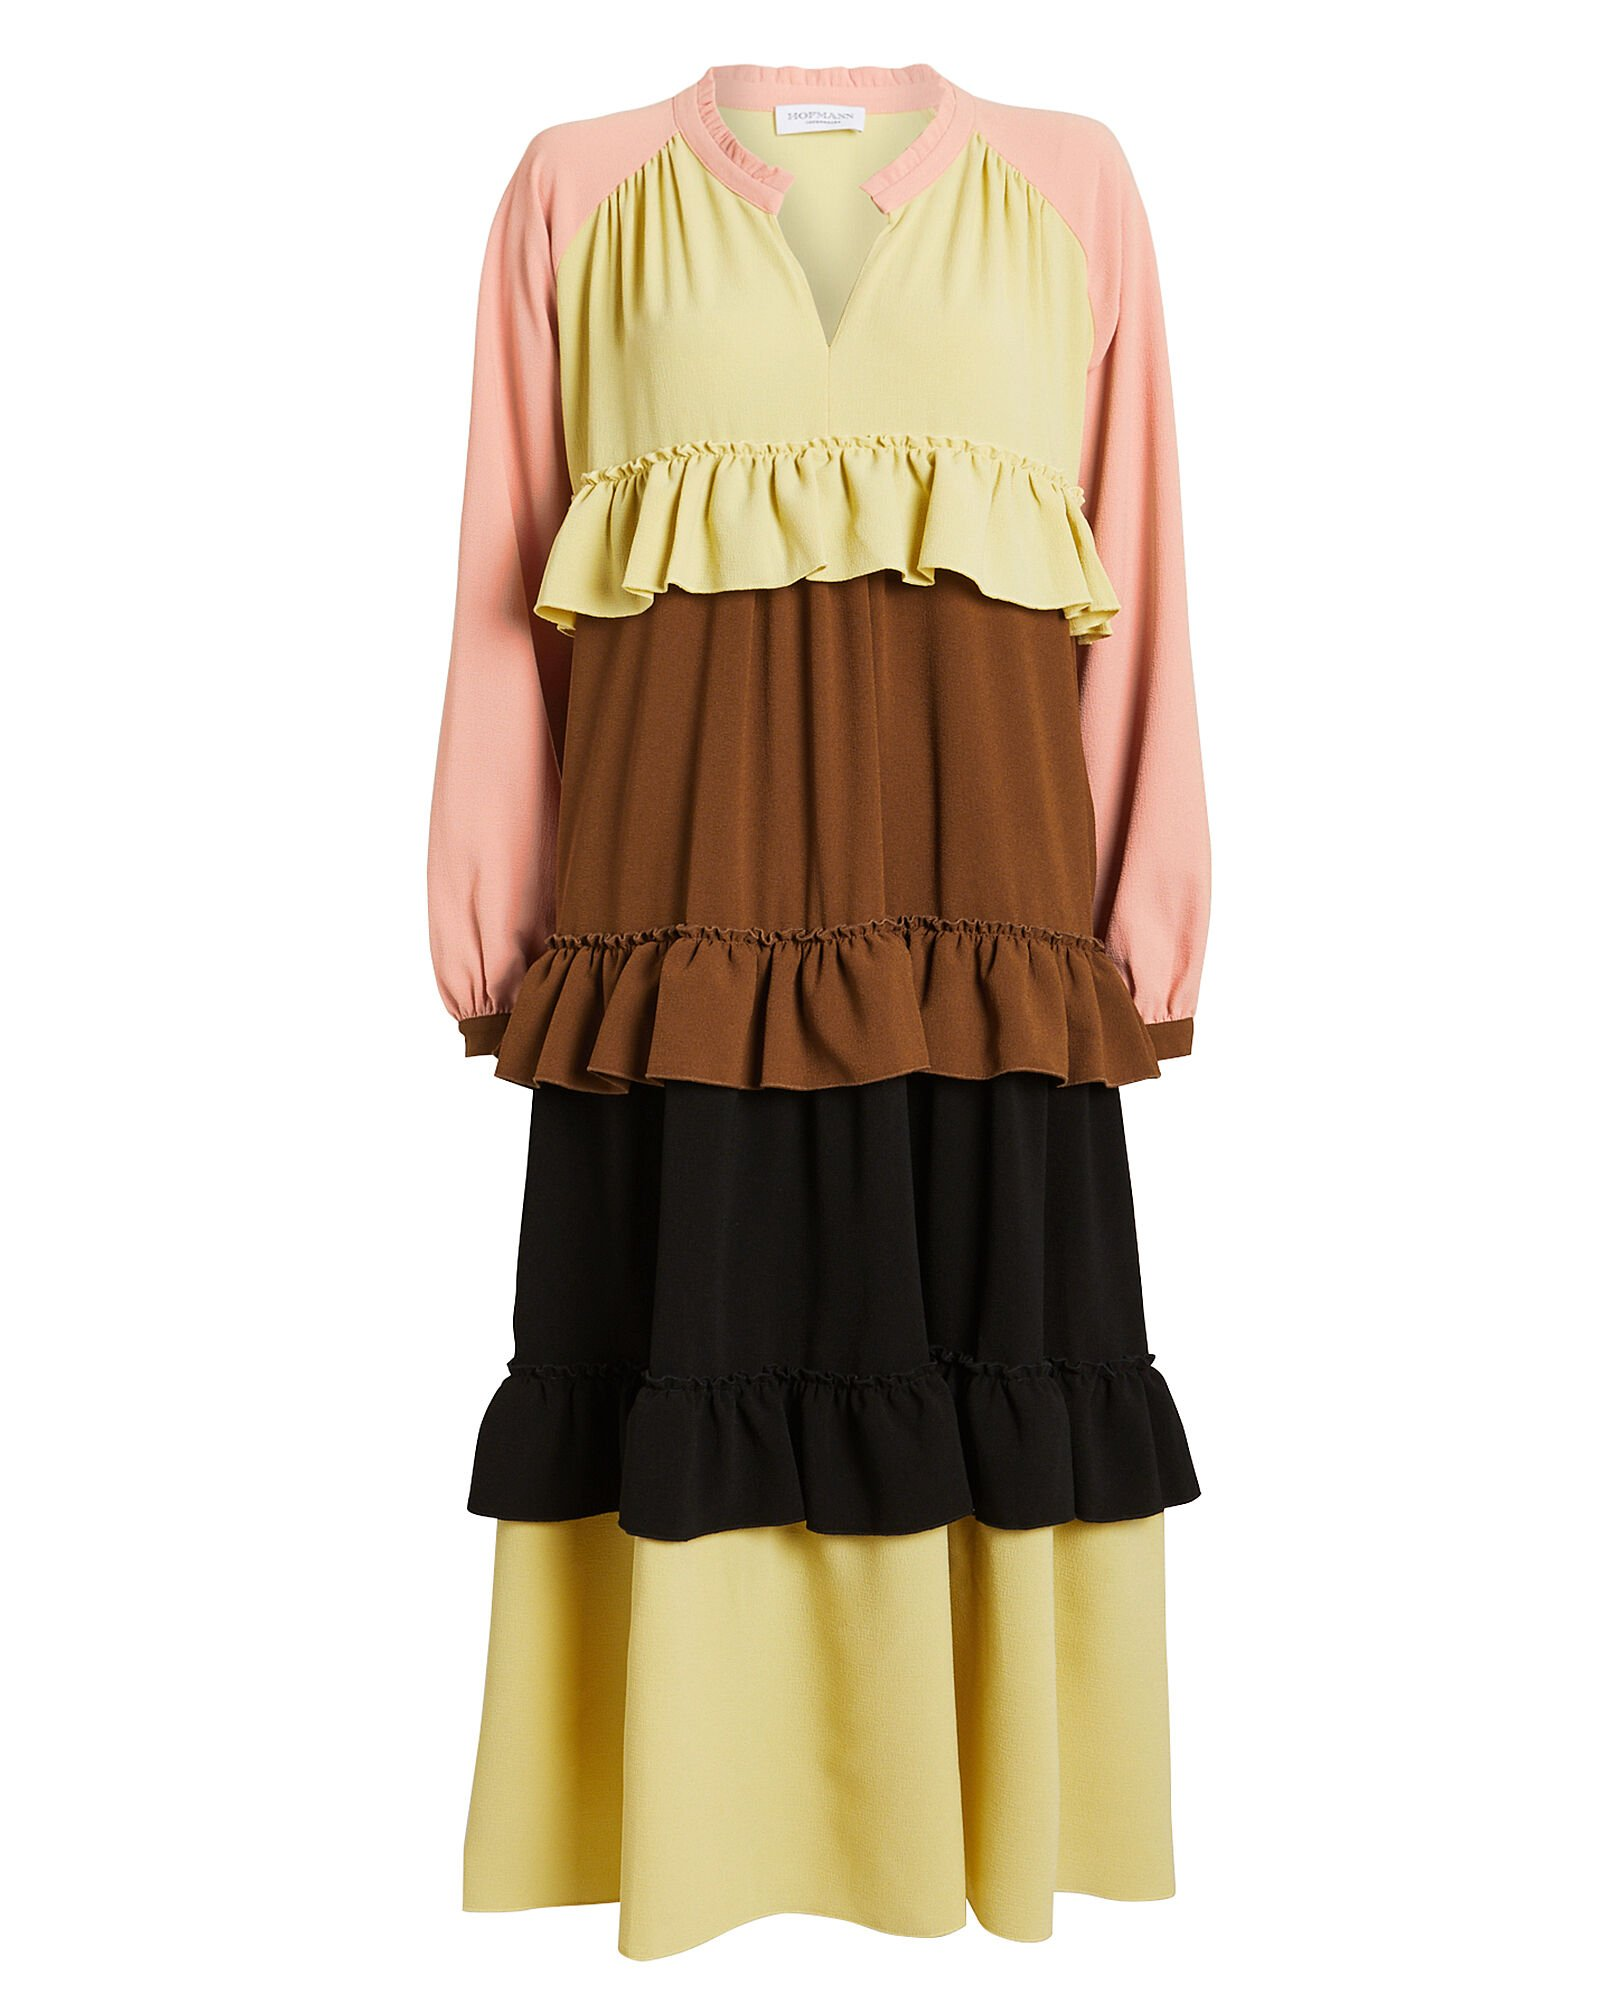 Jeanne Tiered Colorblocked Dress, MULTI, hi-res